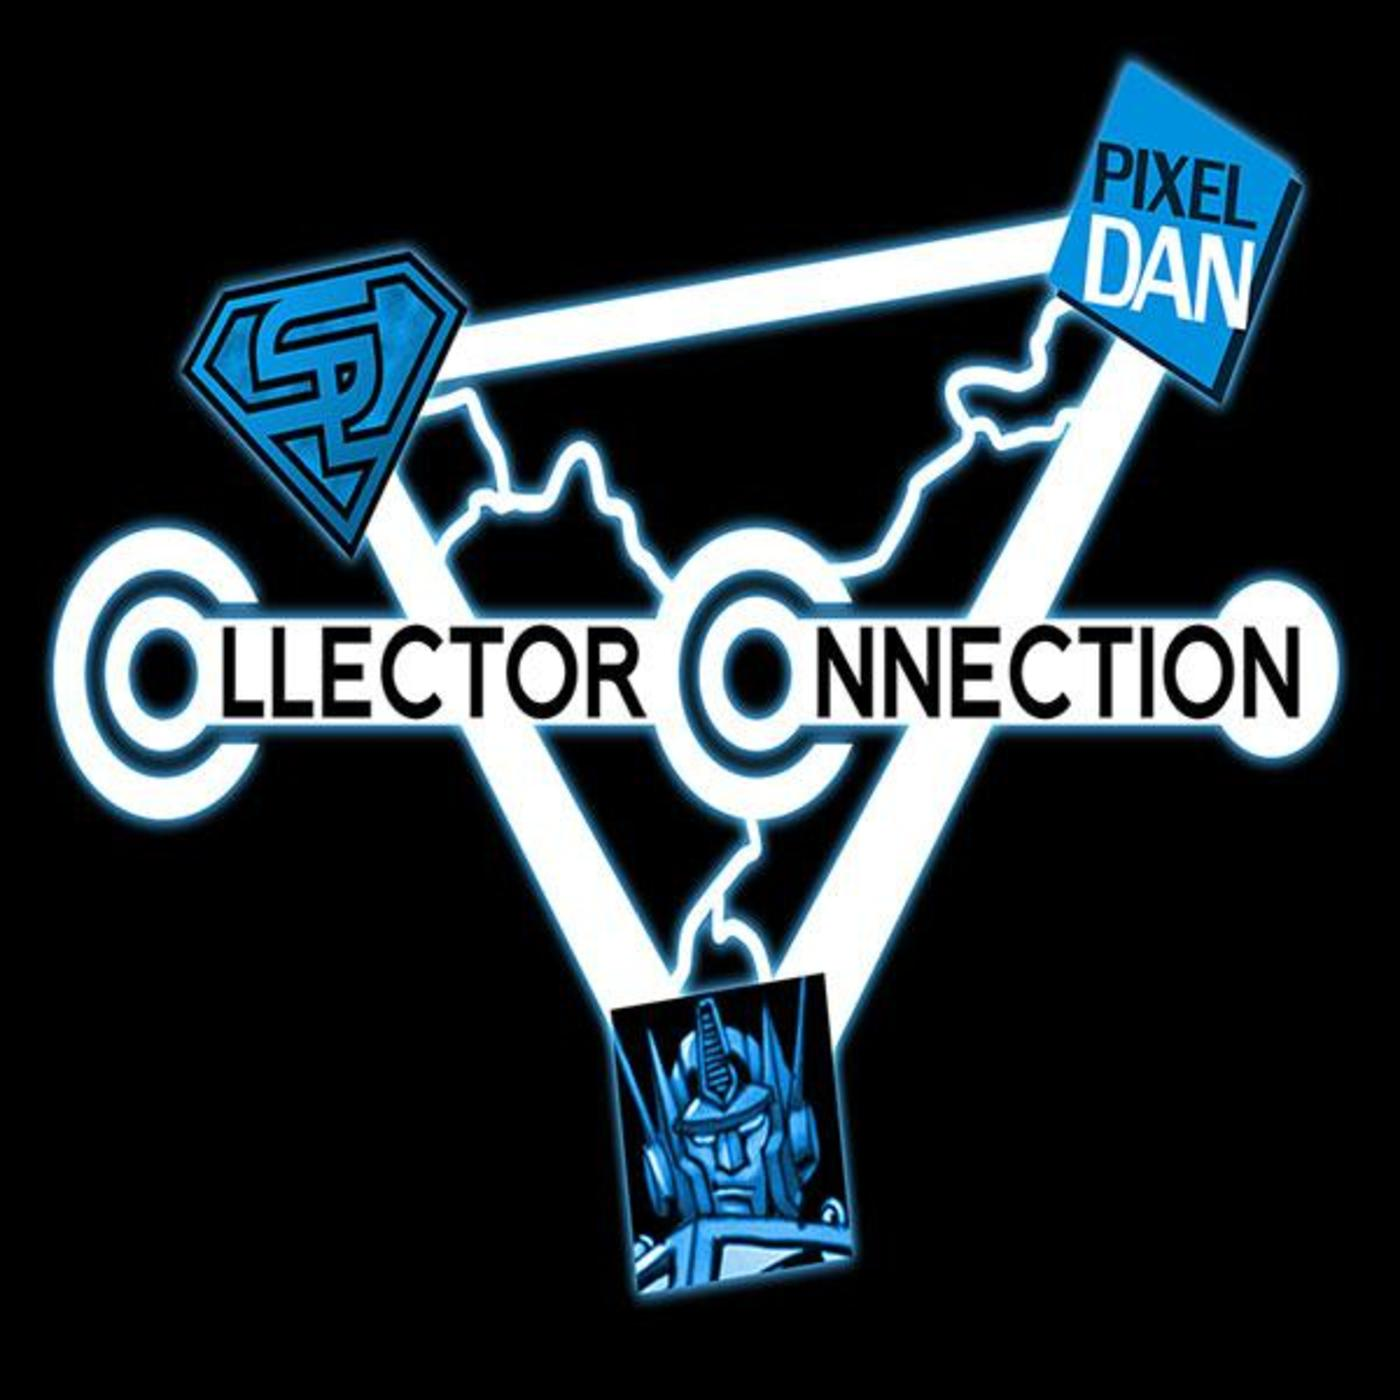 Collector Connection